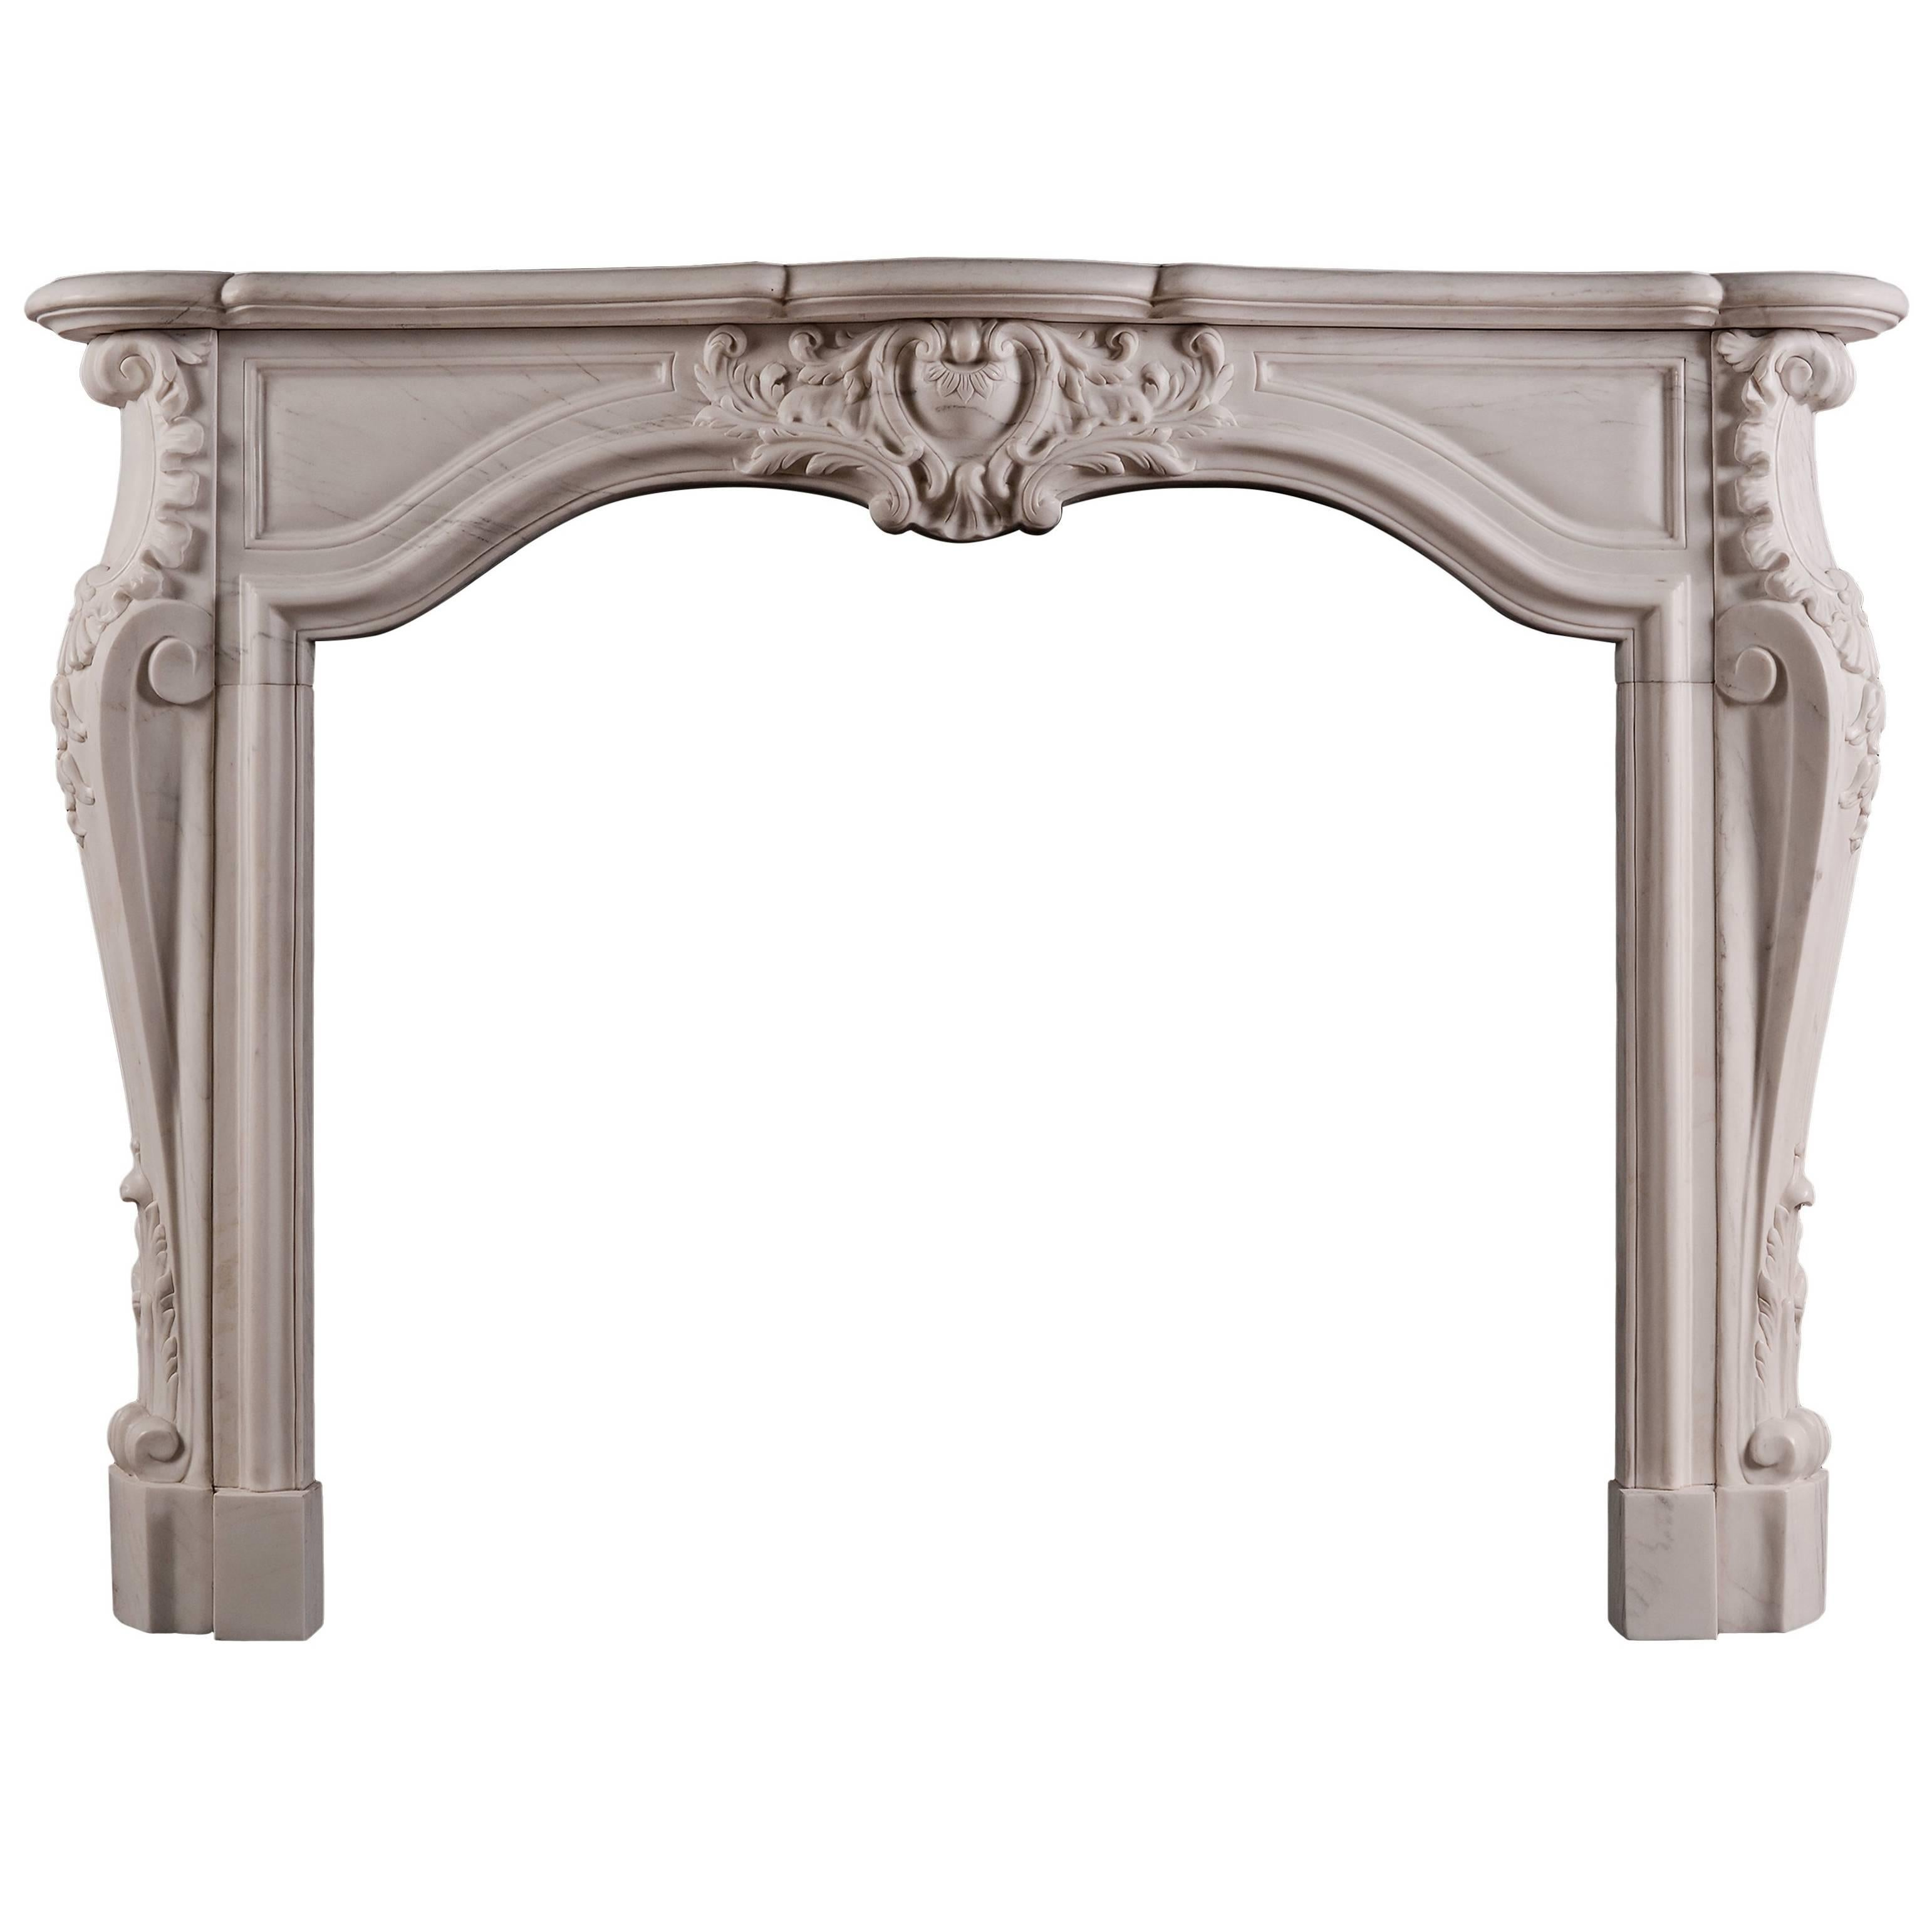 French Transitional Louis XIV/XV Marble Fireplace